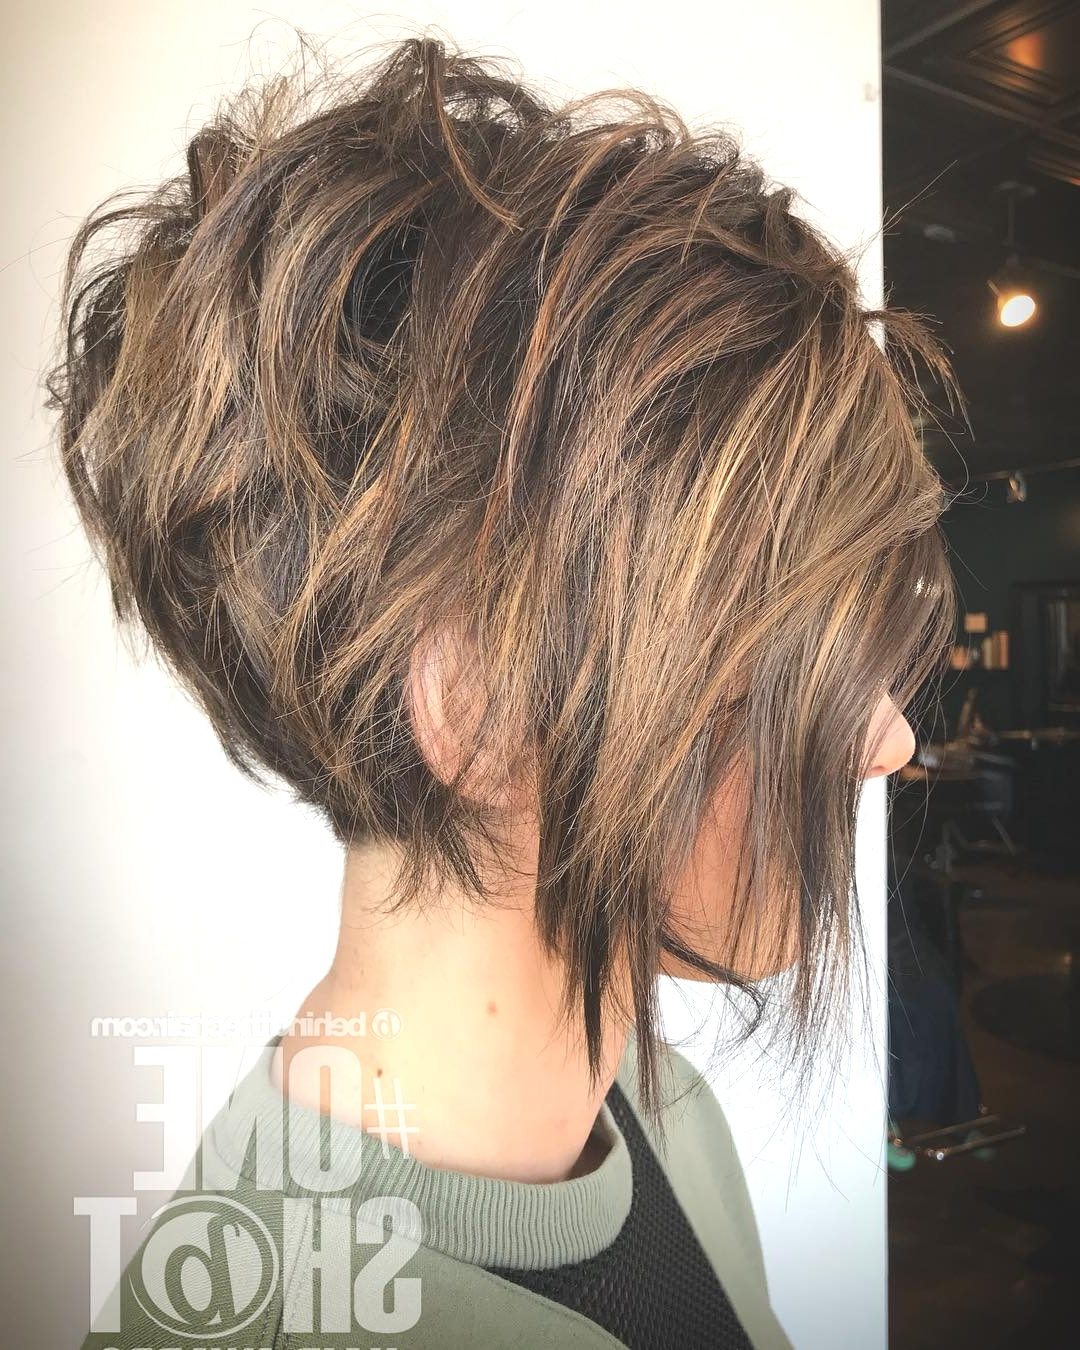 Hairstyles : Messy Layered Short Hair Astonishing 10 Trendy Intended For Layered Short Bob Haircuts (View 8 of 20)